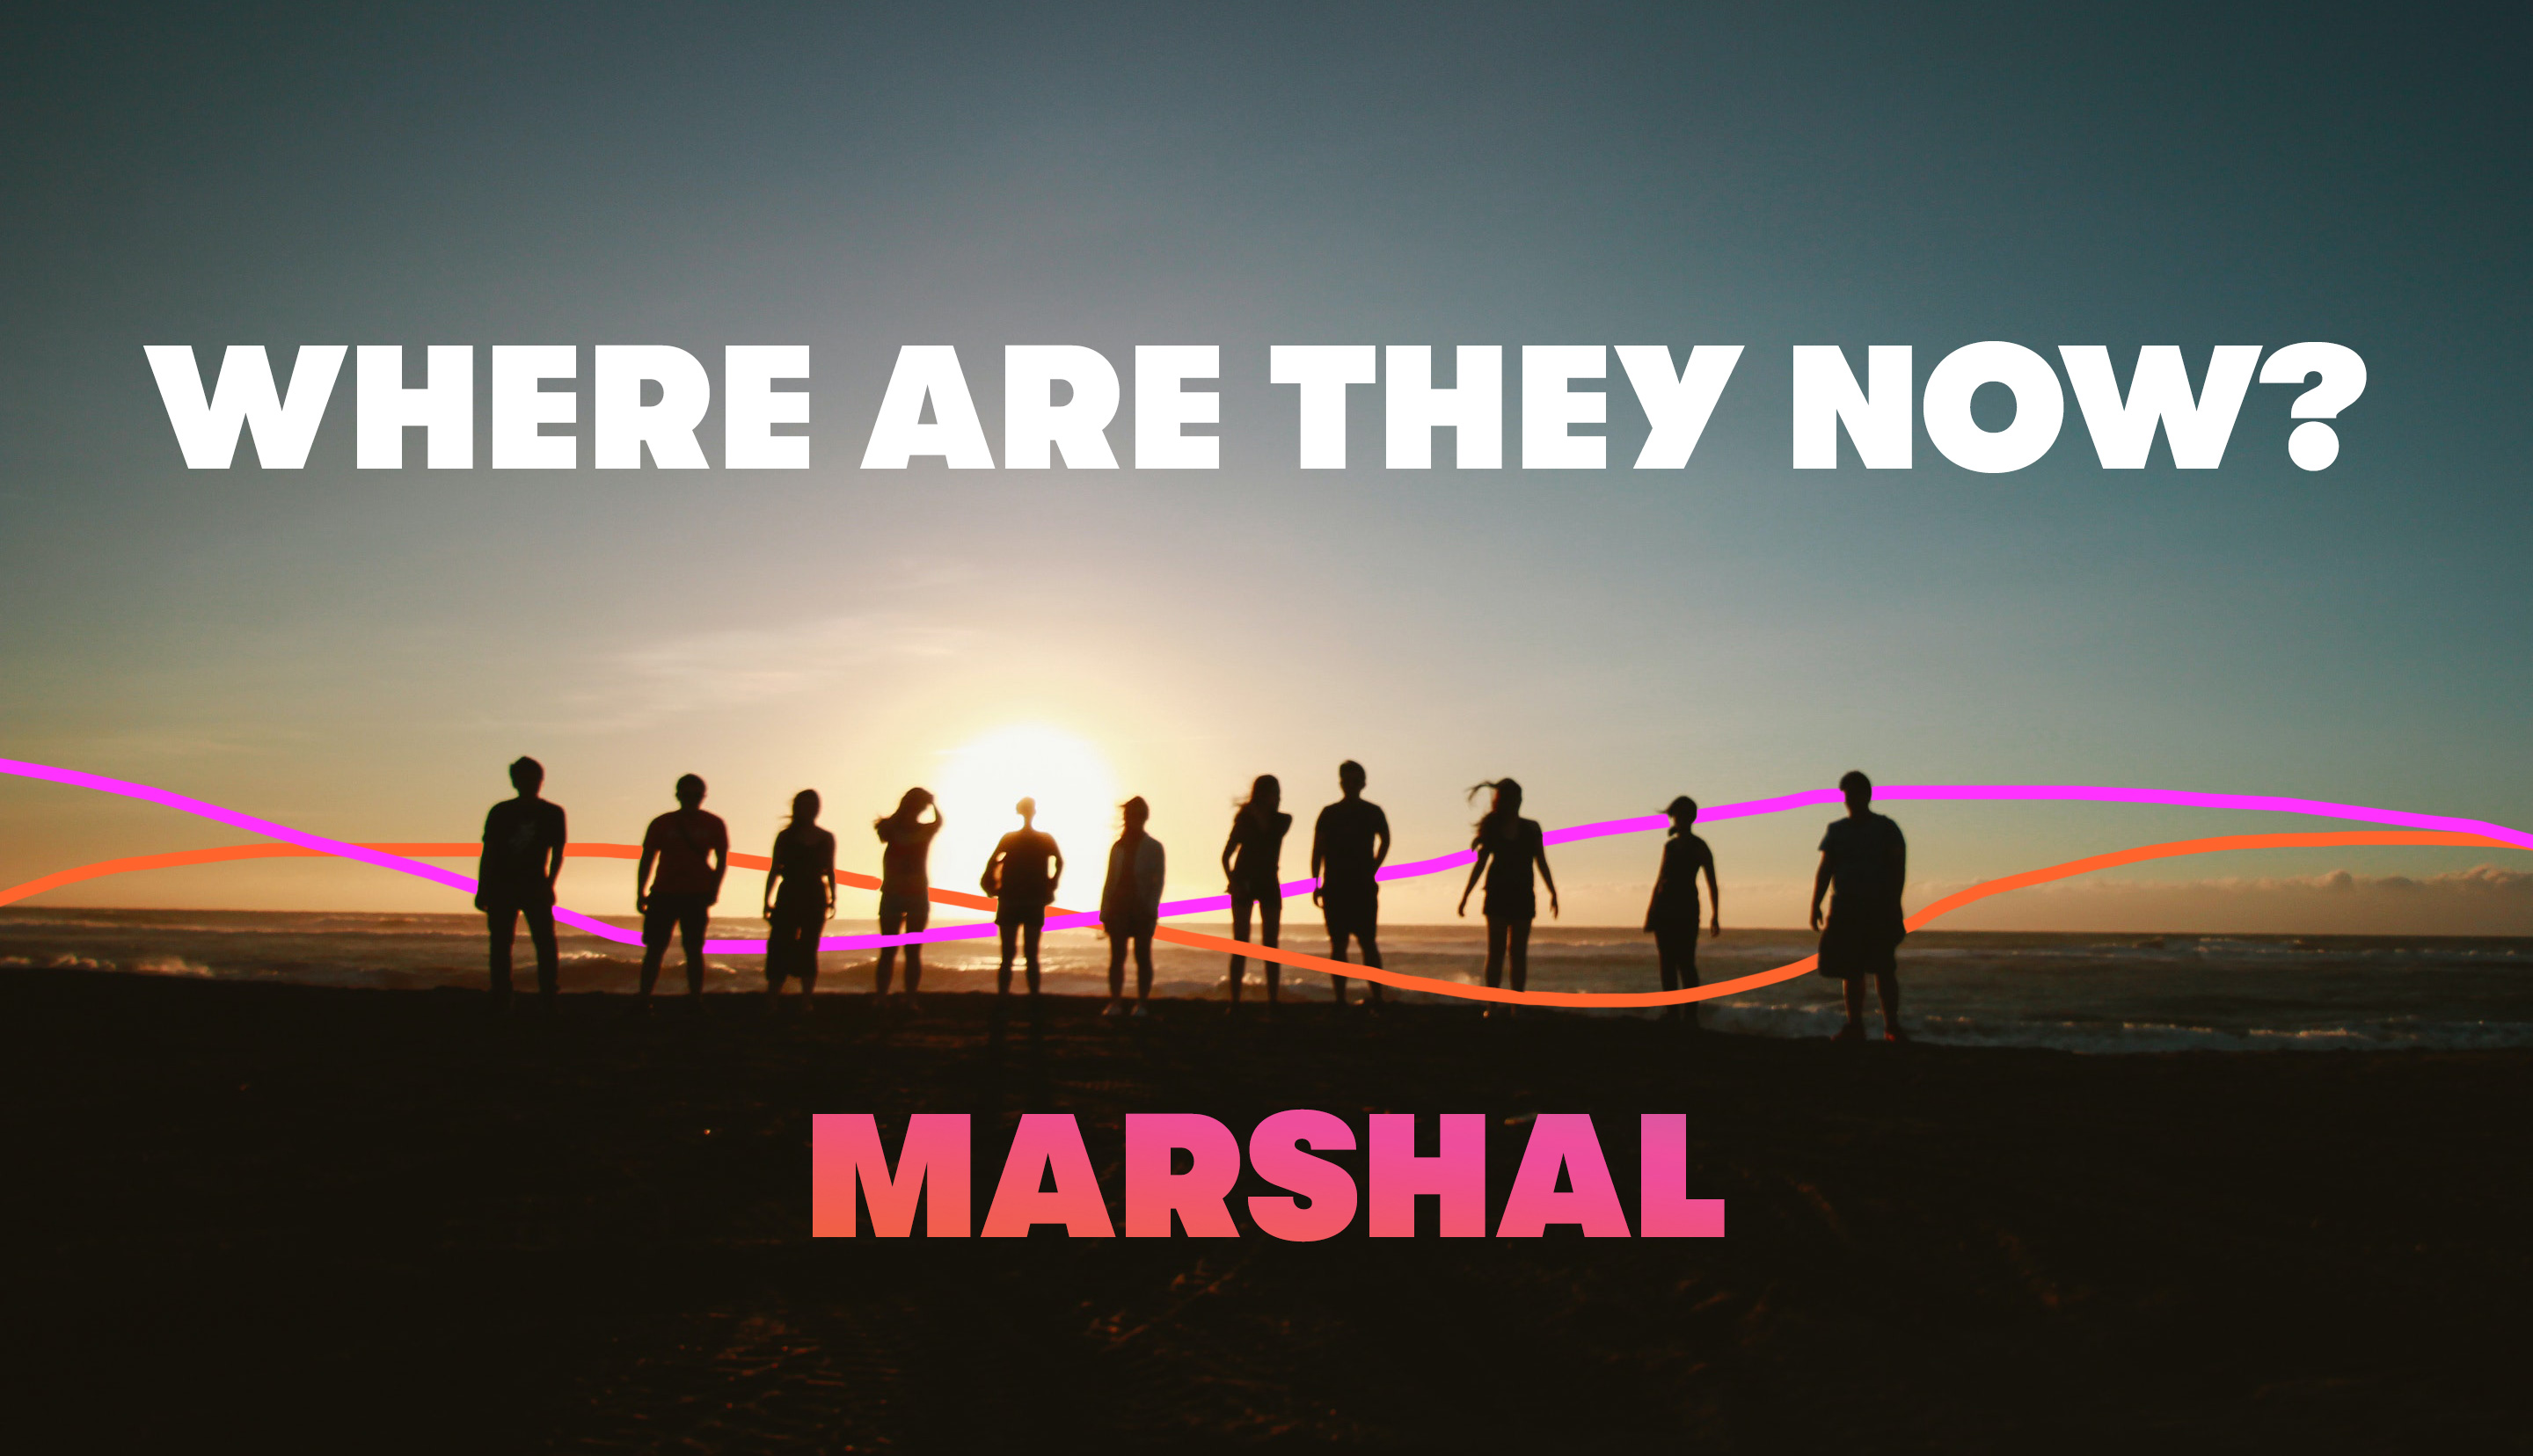 Where are they now header (Marshal)